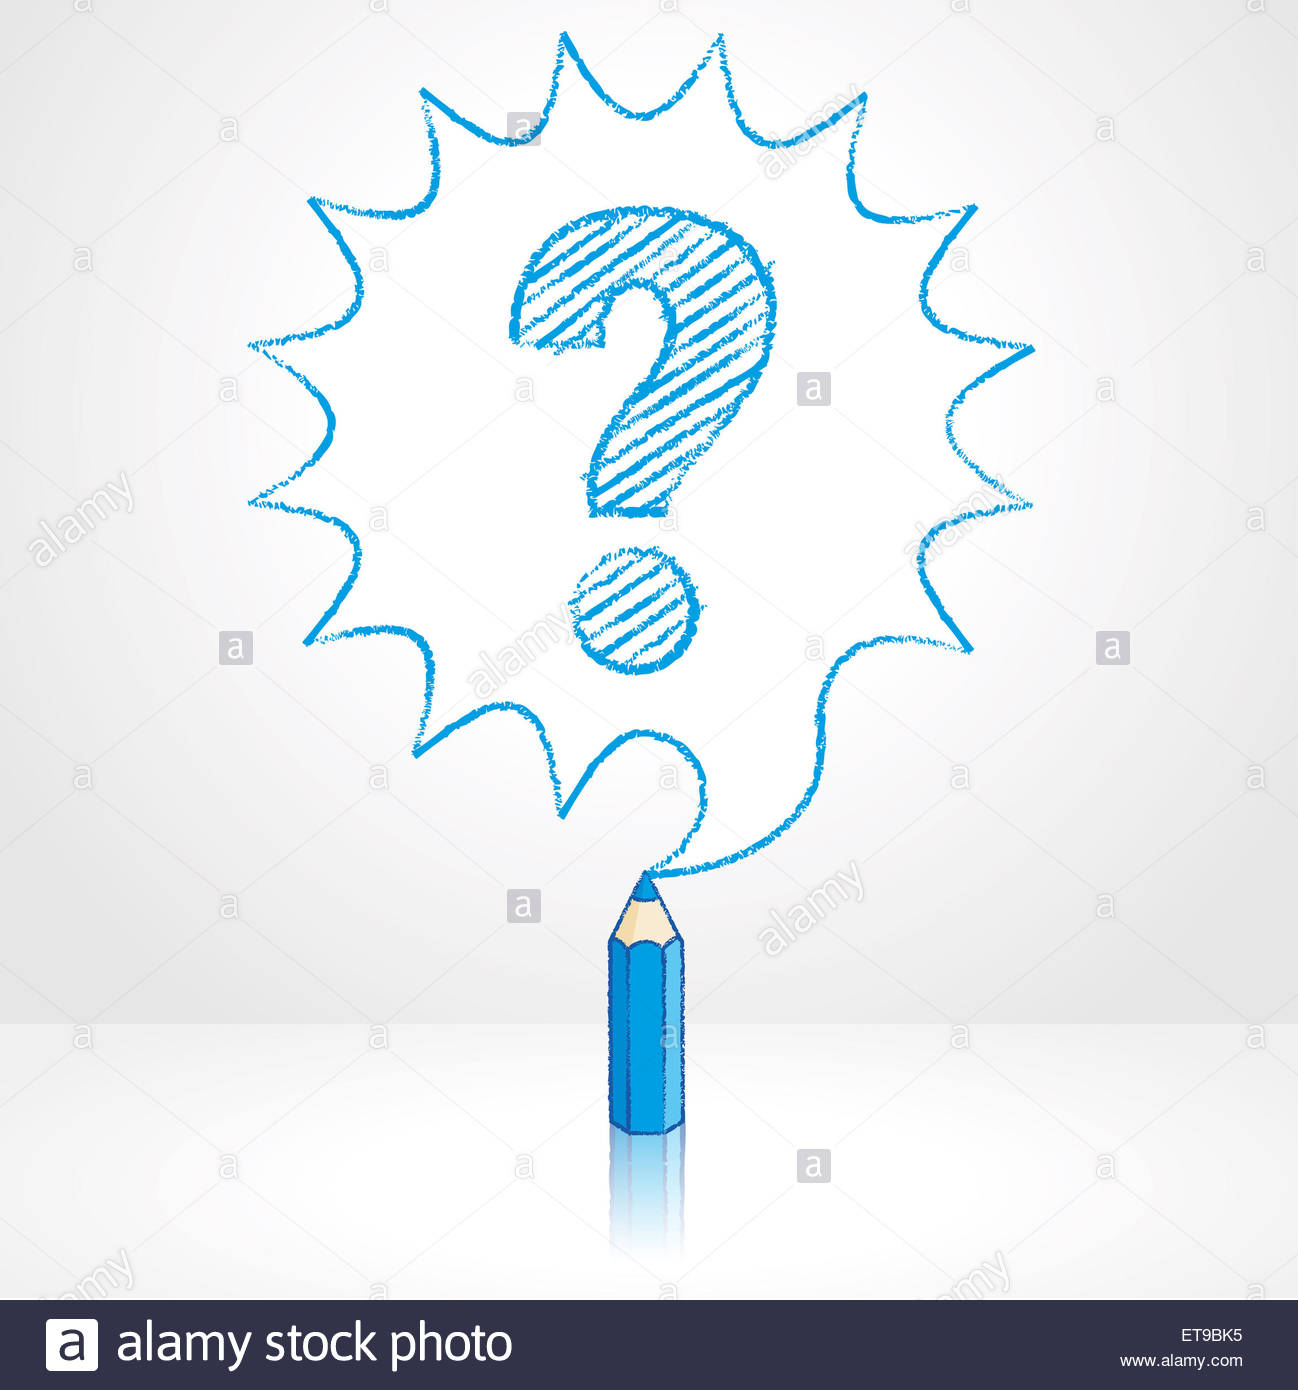 1298x1390 Blue Pencil With Reflection Drawing Question Mark In Rounded Stock